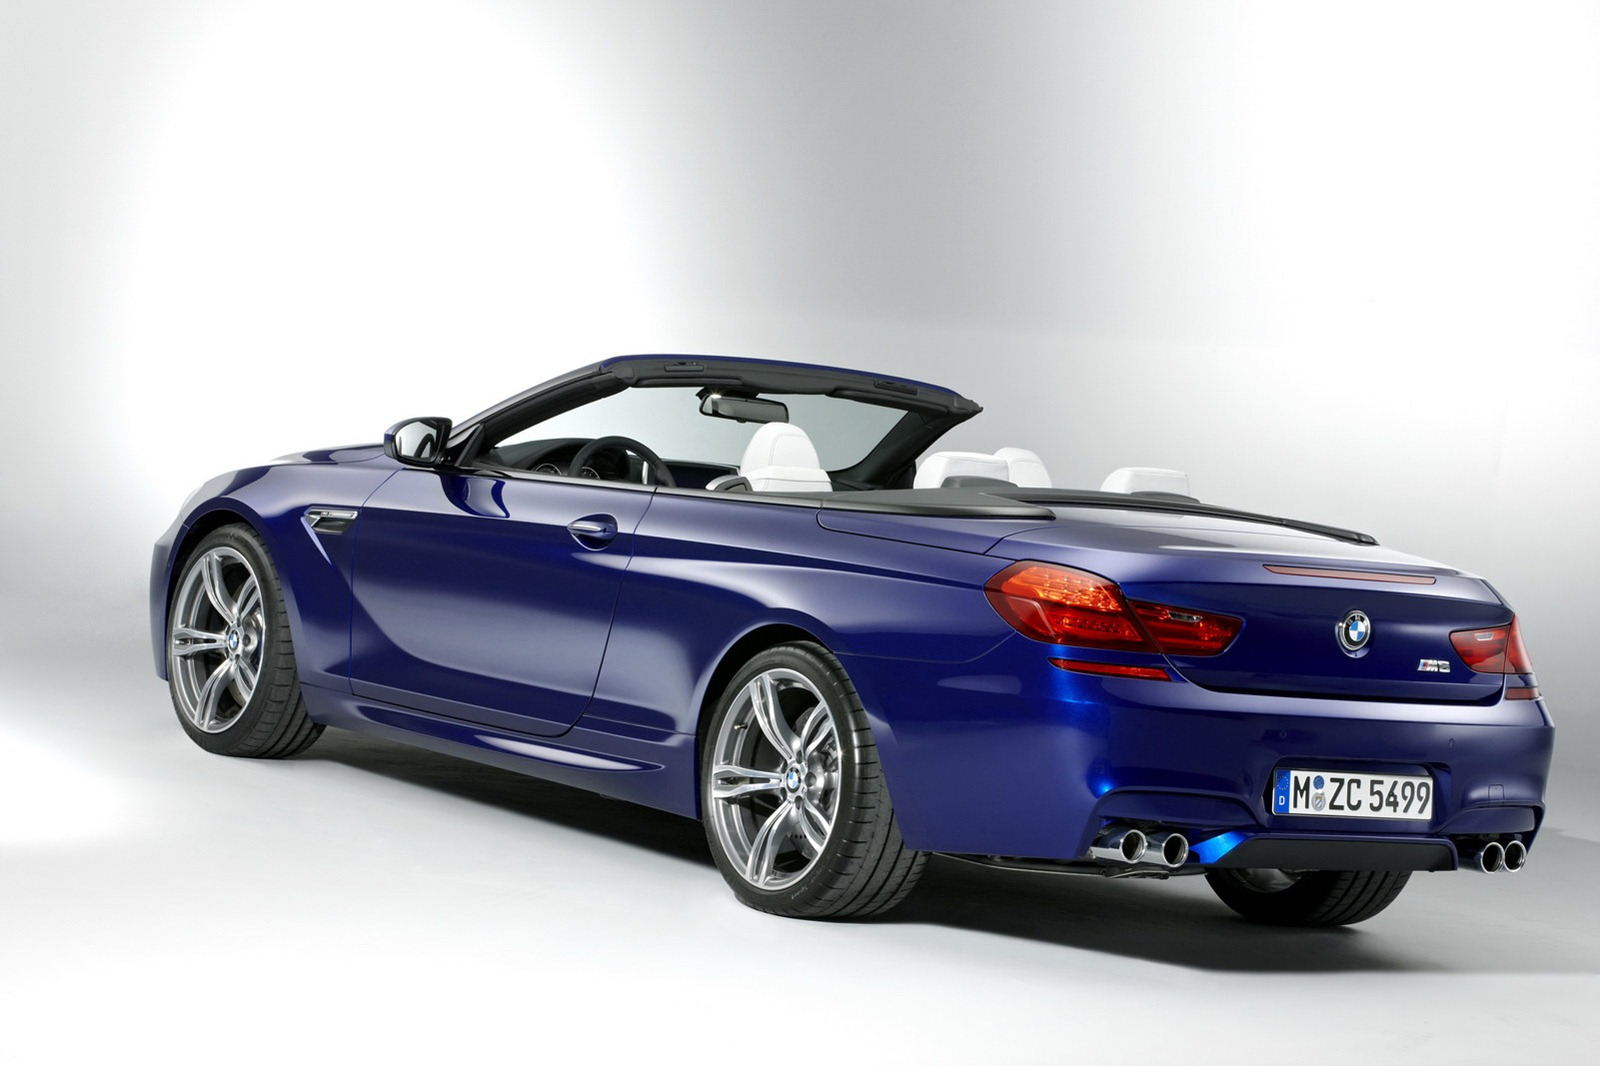 2013 Bmw M6 Convertible Auto Cars Concept